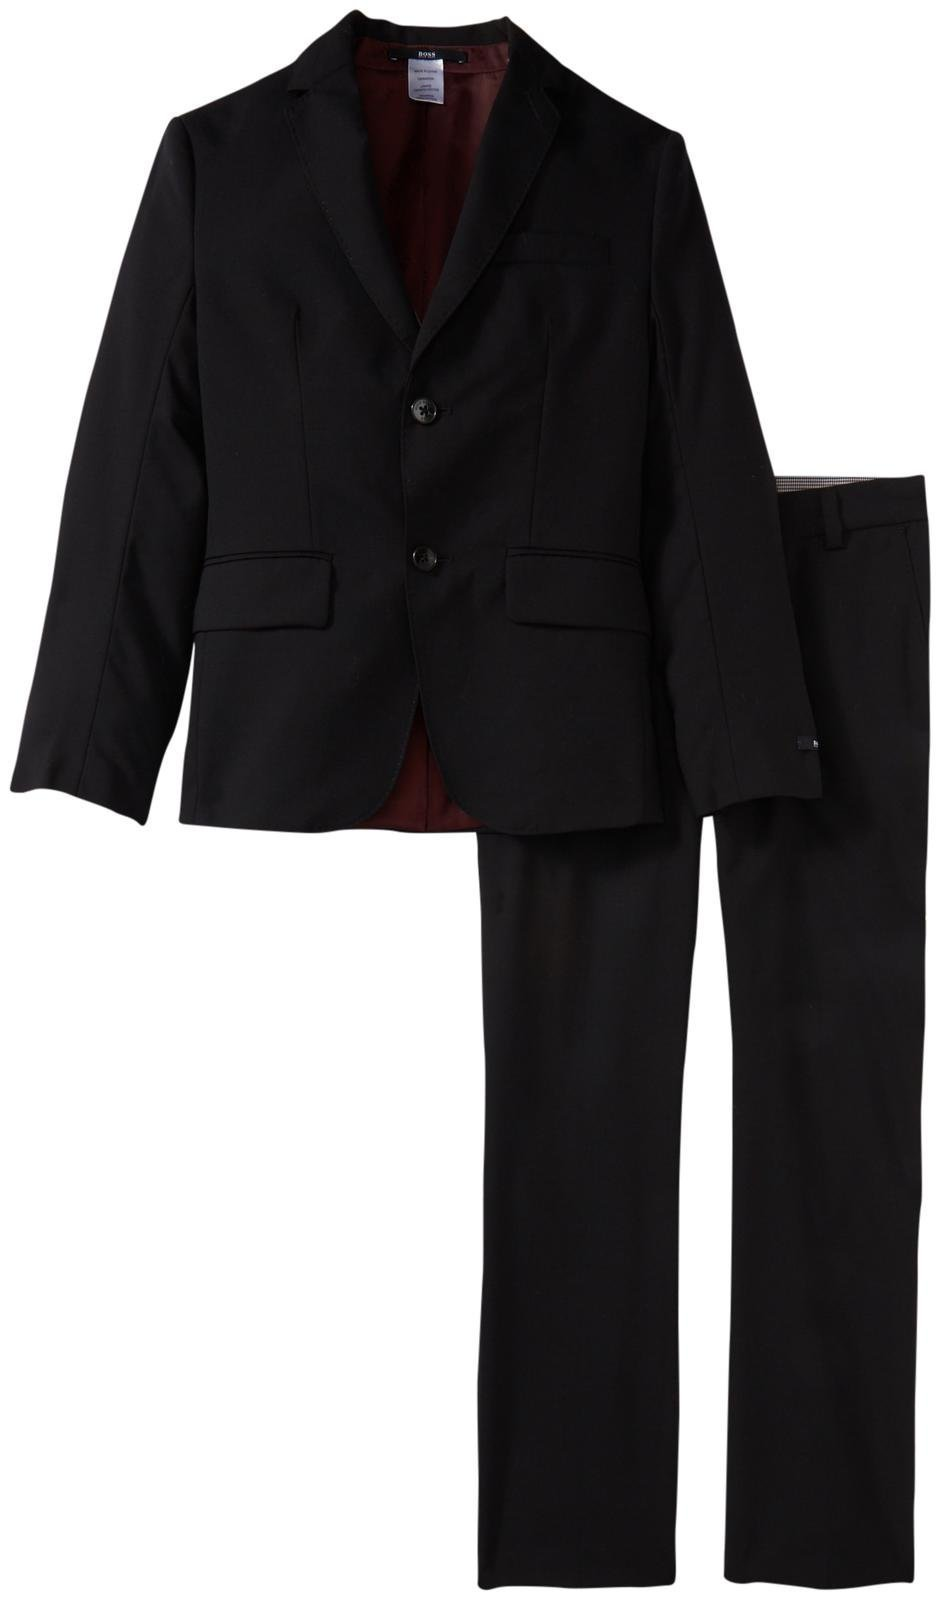 Hugo Boss Boys Essential Suit, Black, 5A by Hugo Boss